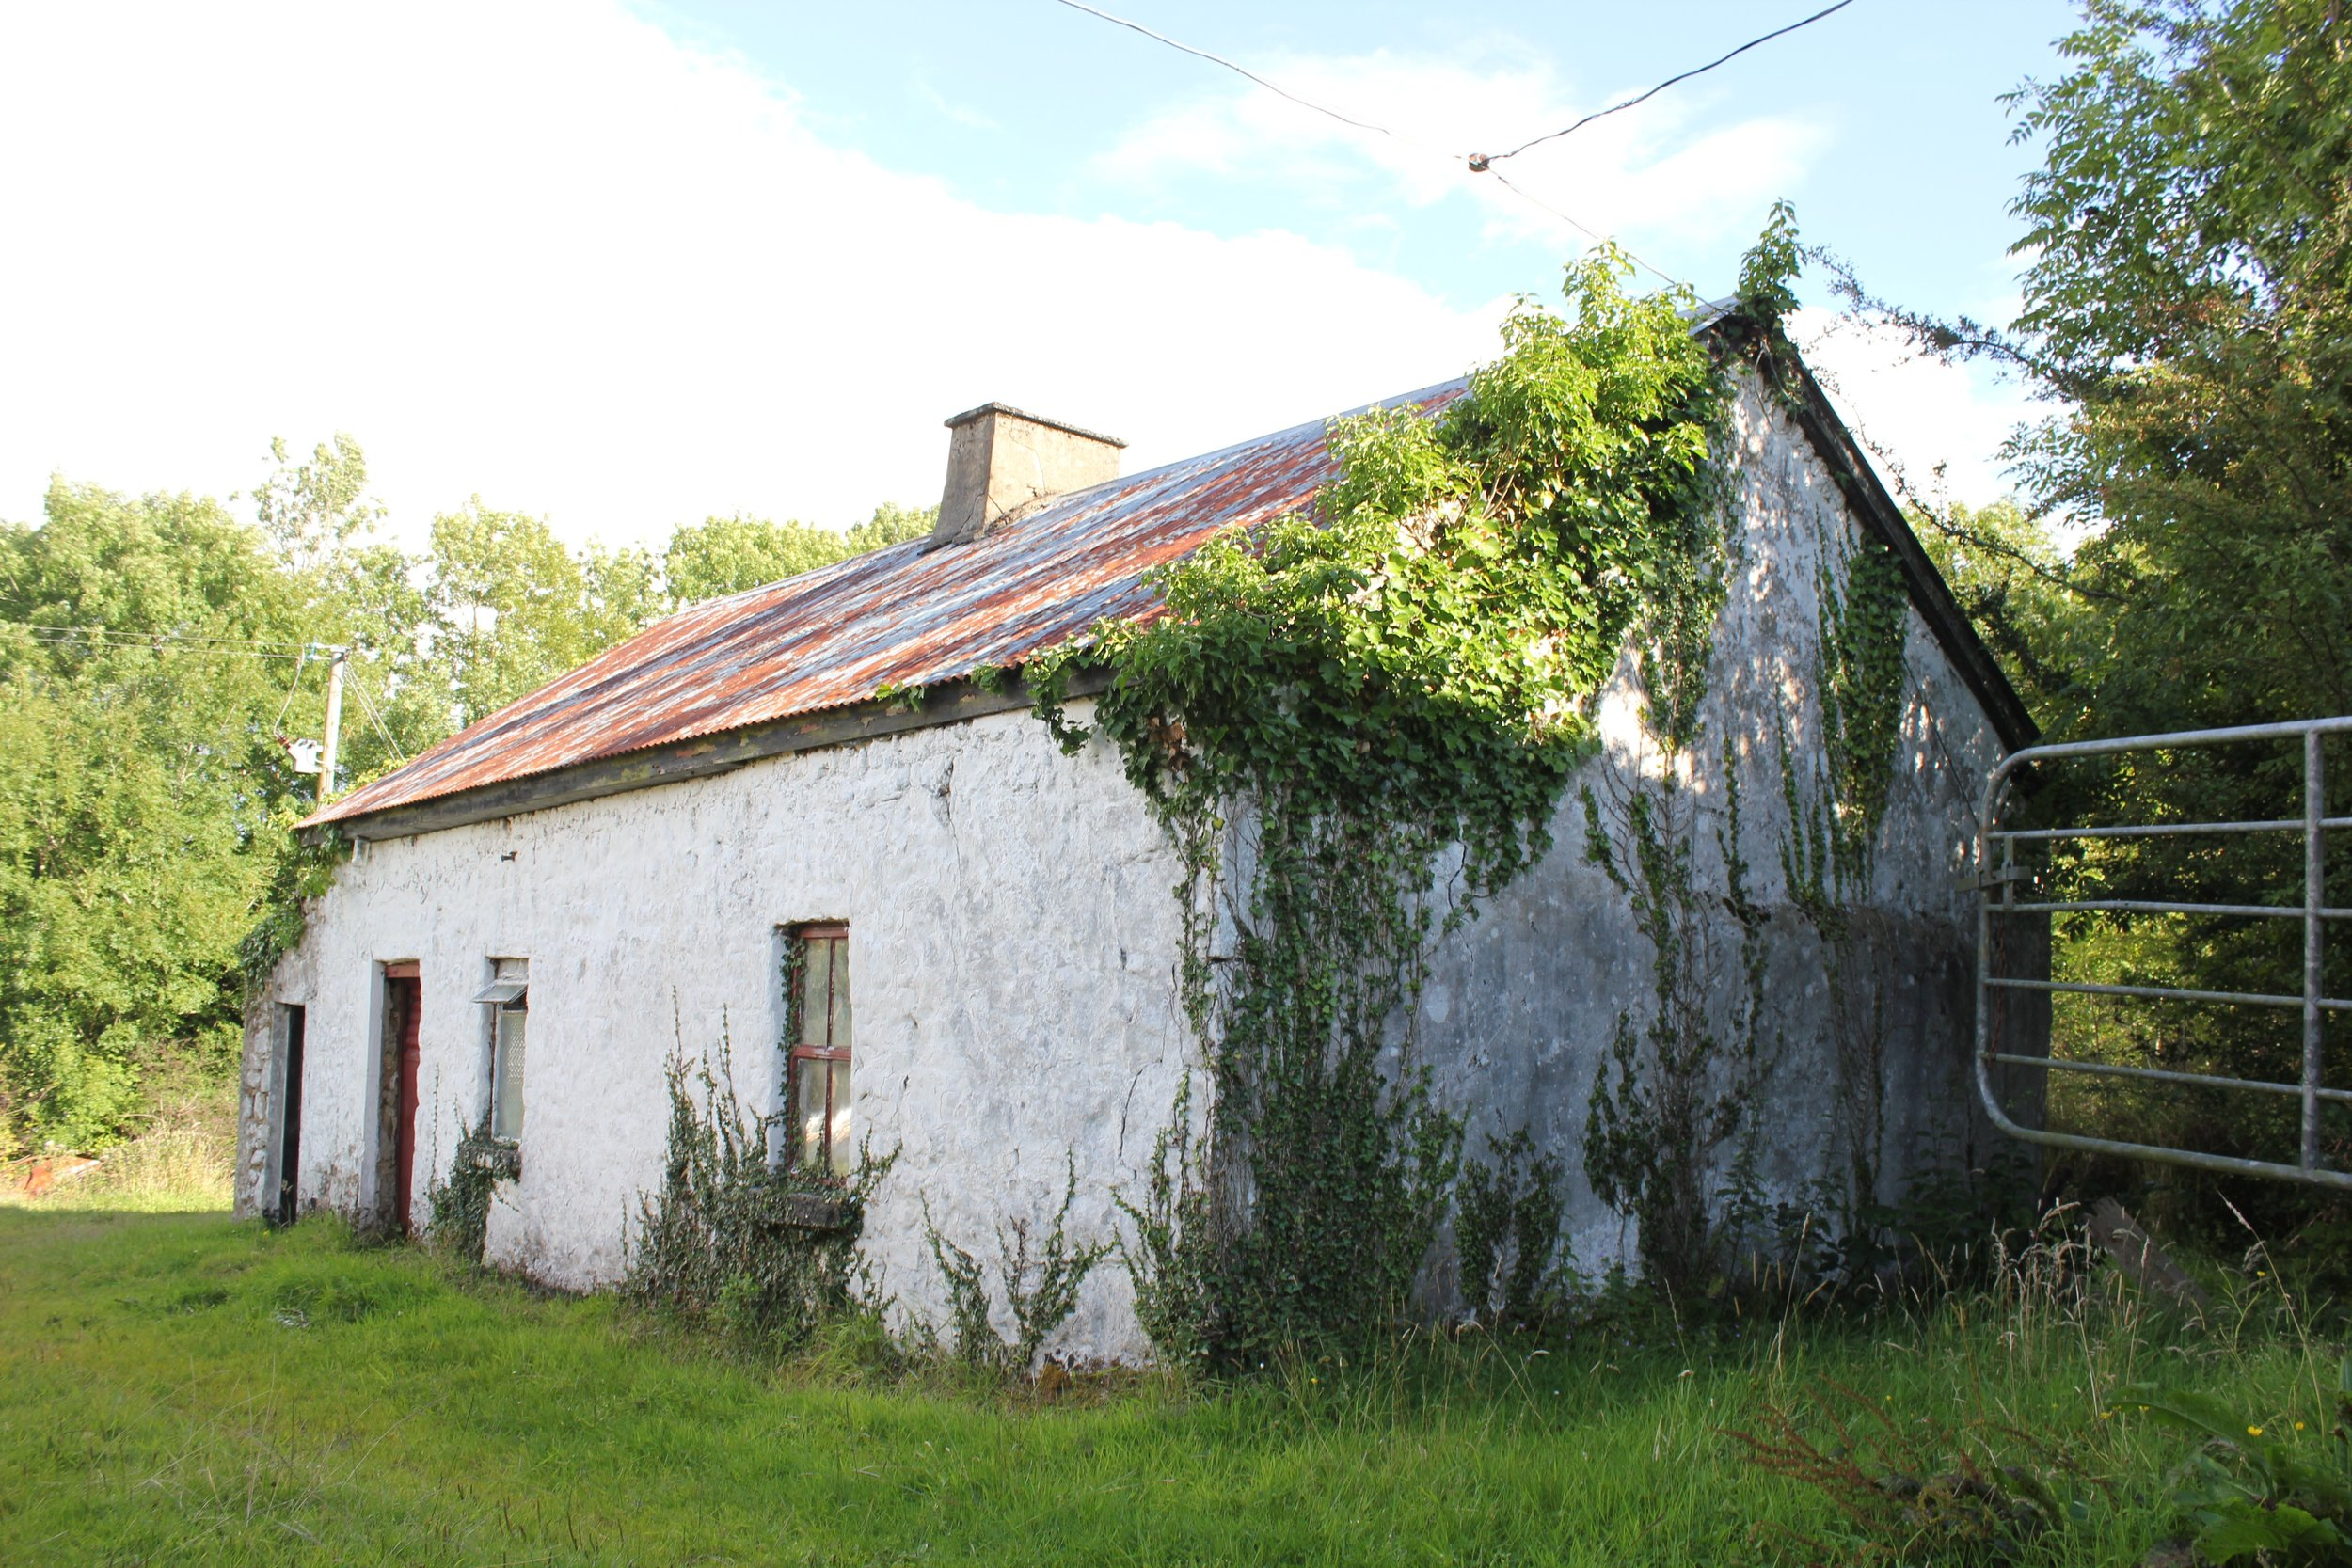 Family Home in Moheranea, County Fermanagh, Ireland